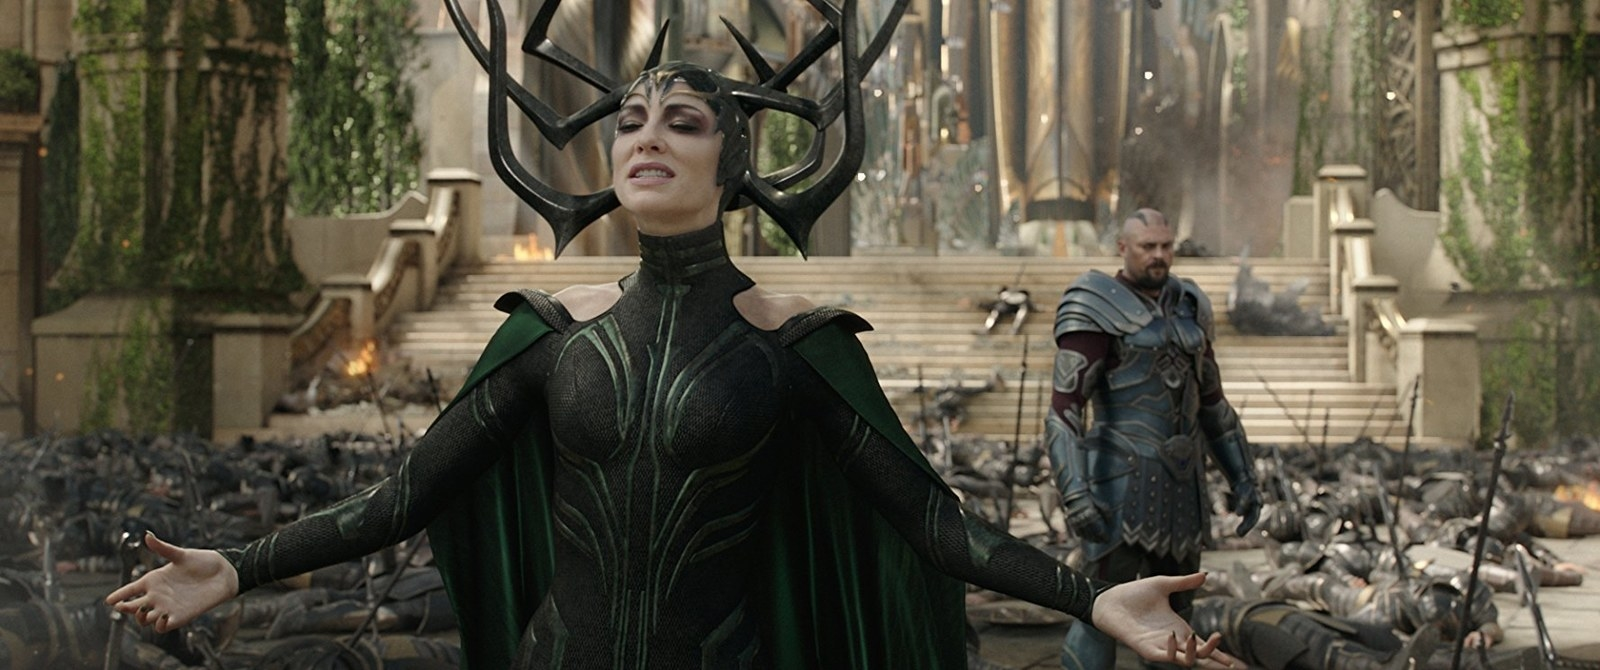 Marvel Studios' Movies, Ranked From Worst To Best